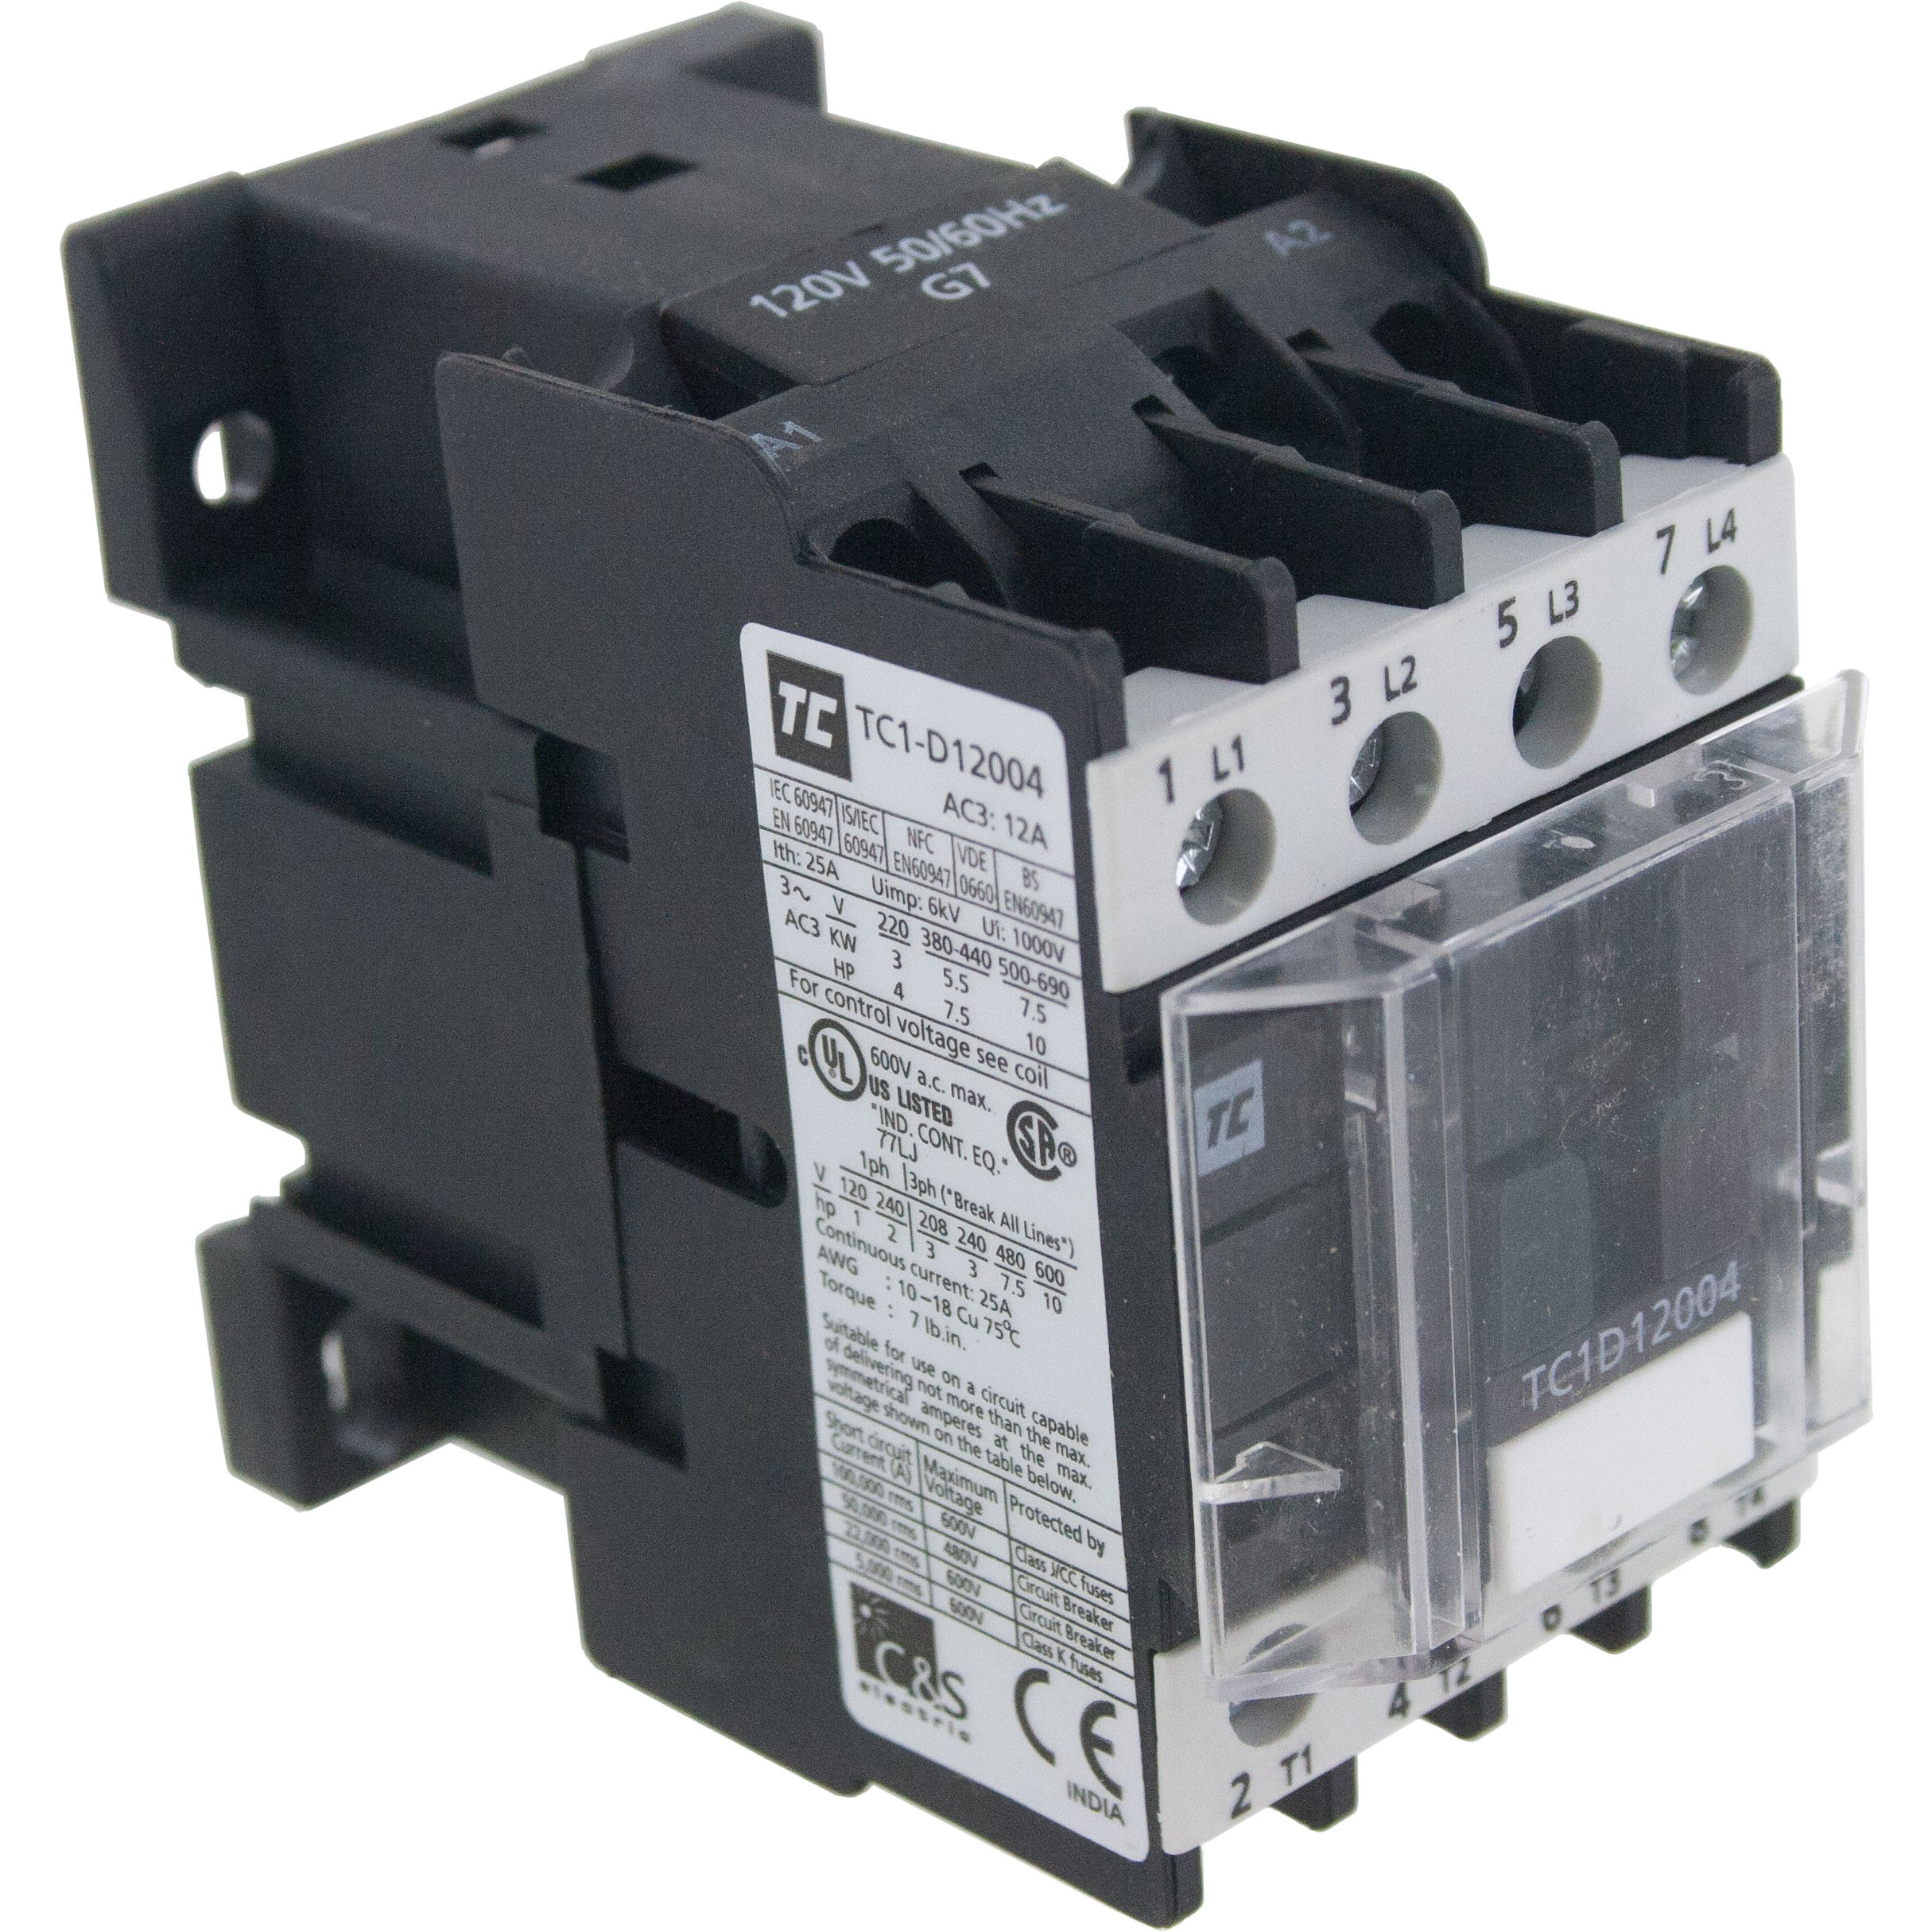 4 Pole Contactor 12 Amp 2 N/O - 2 N/C 110 Volt AC Coil Angle